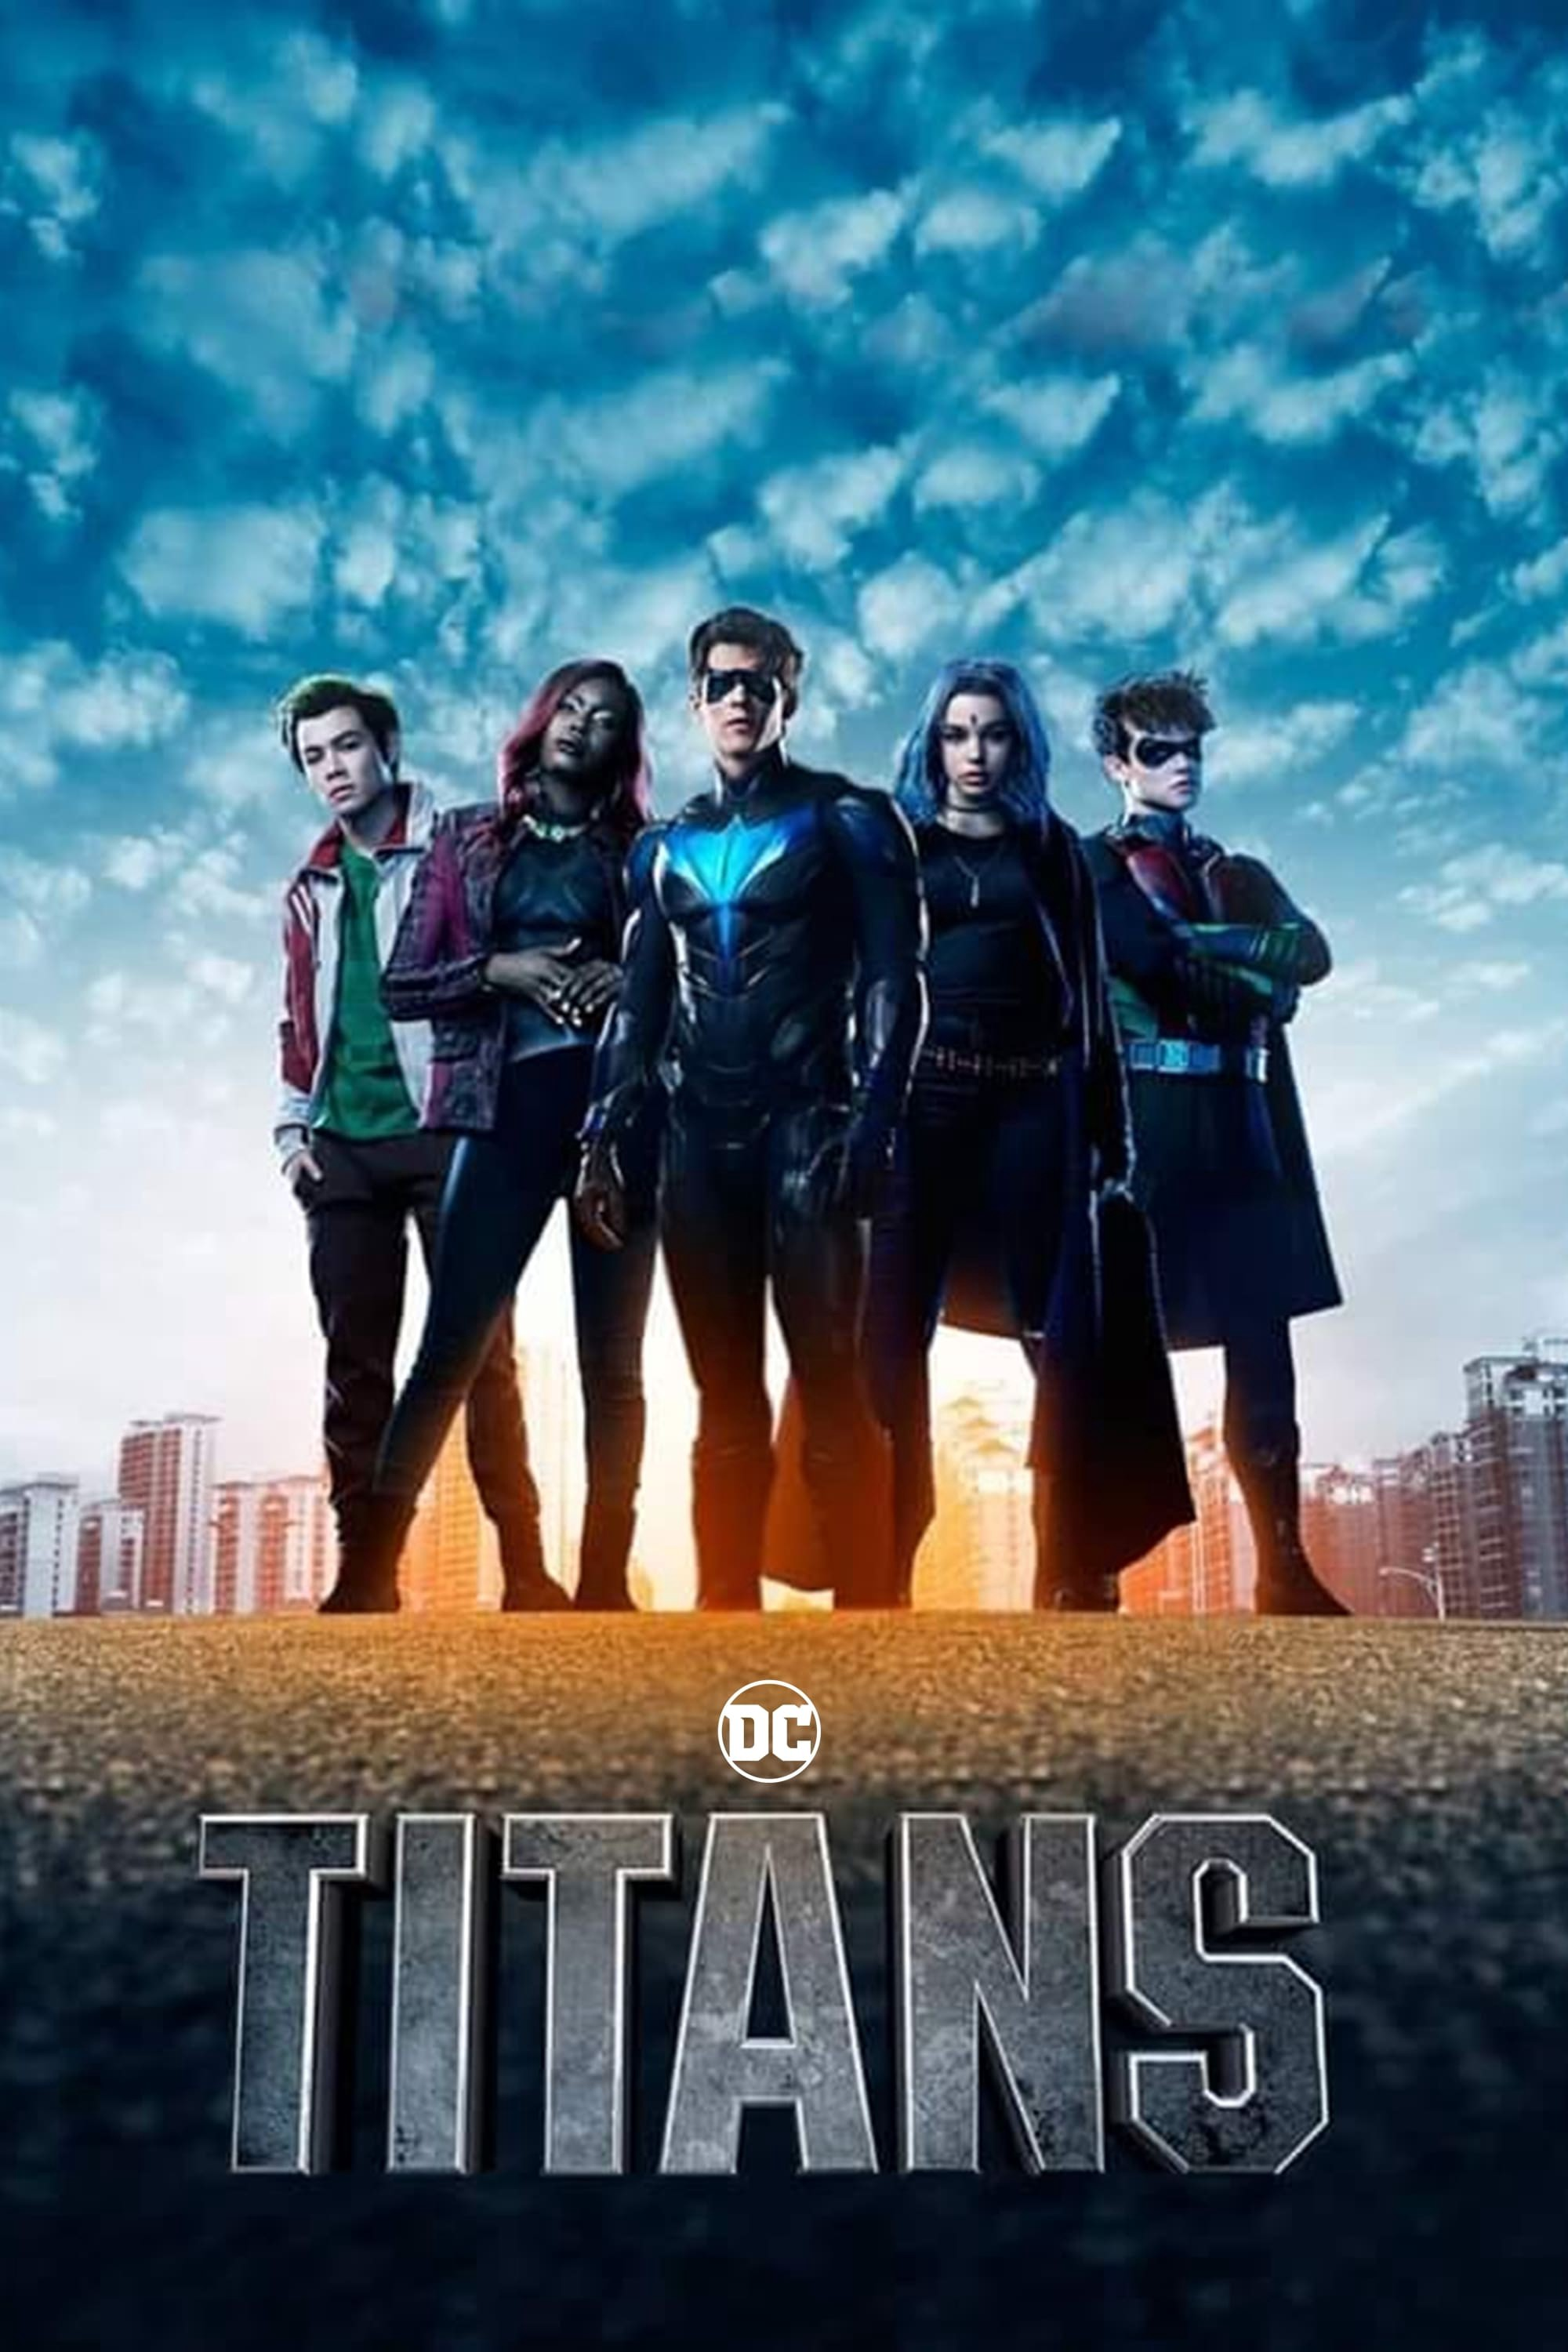 titans season 1 episode 2 watch free